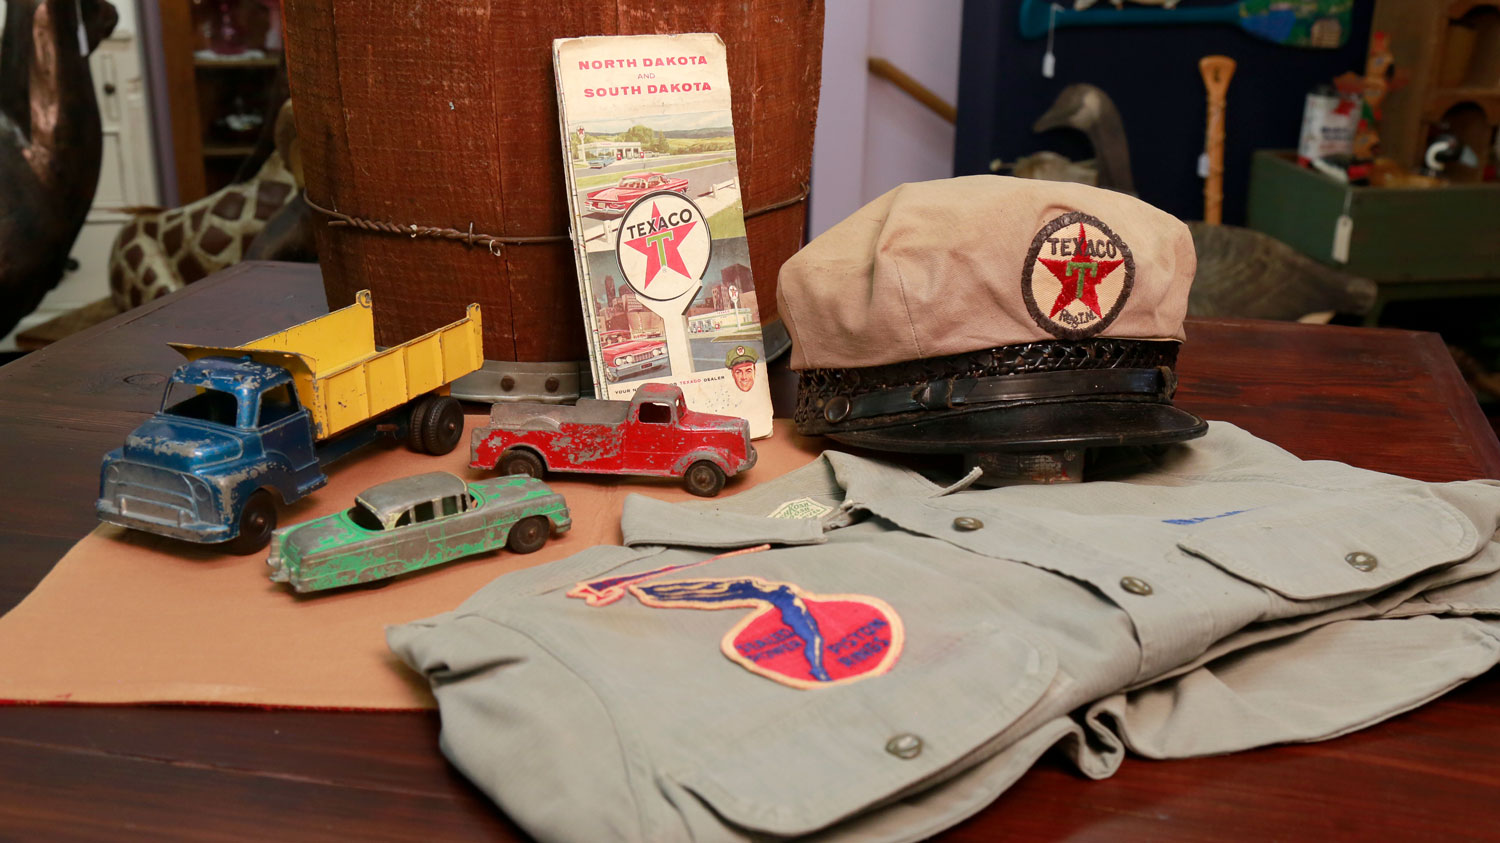 Automobilia - collectible 1930's Gas Station Attendant's Cap and uniform shirt with Studebaker Sealed Power Piston Rings logo